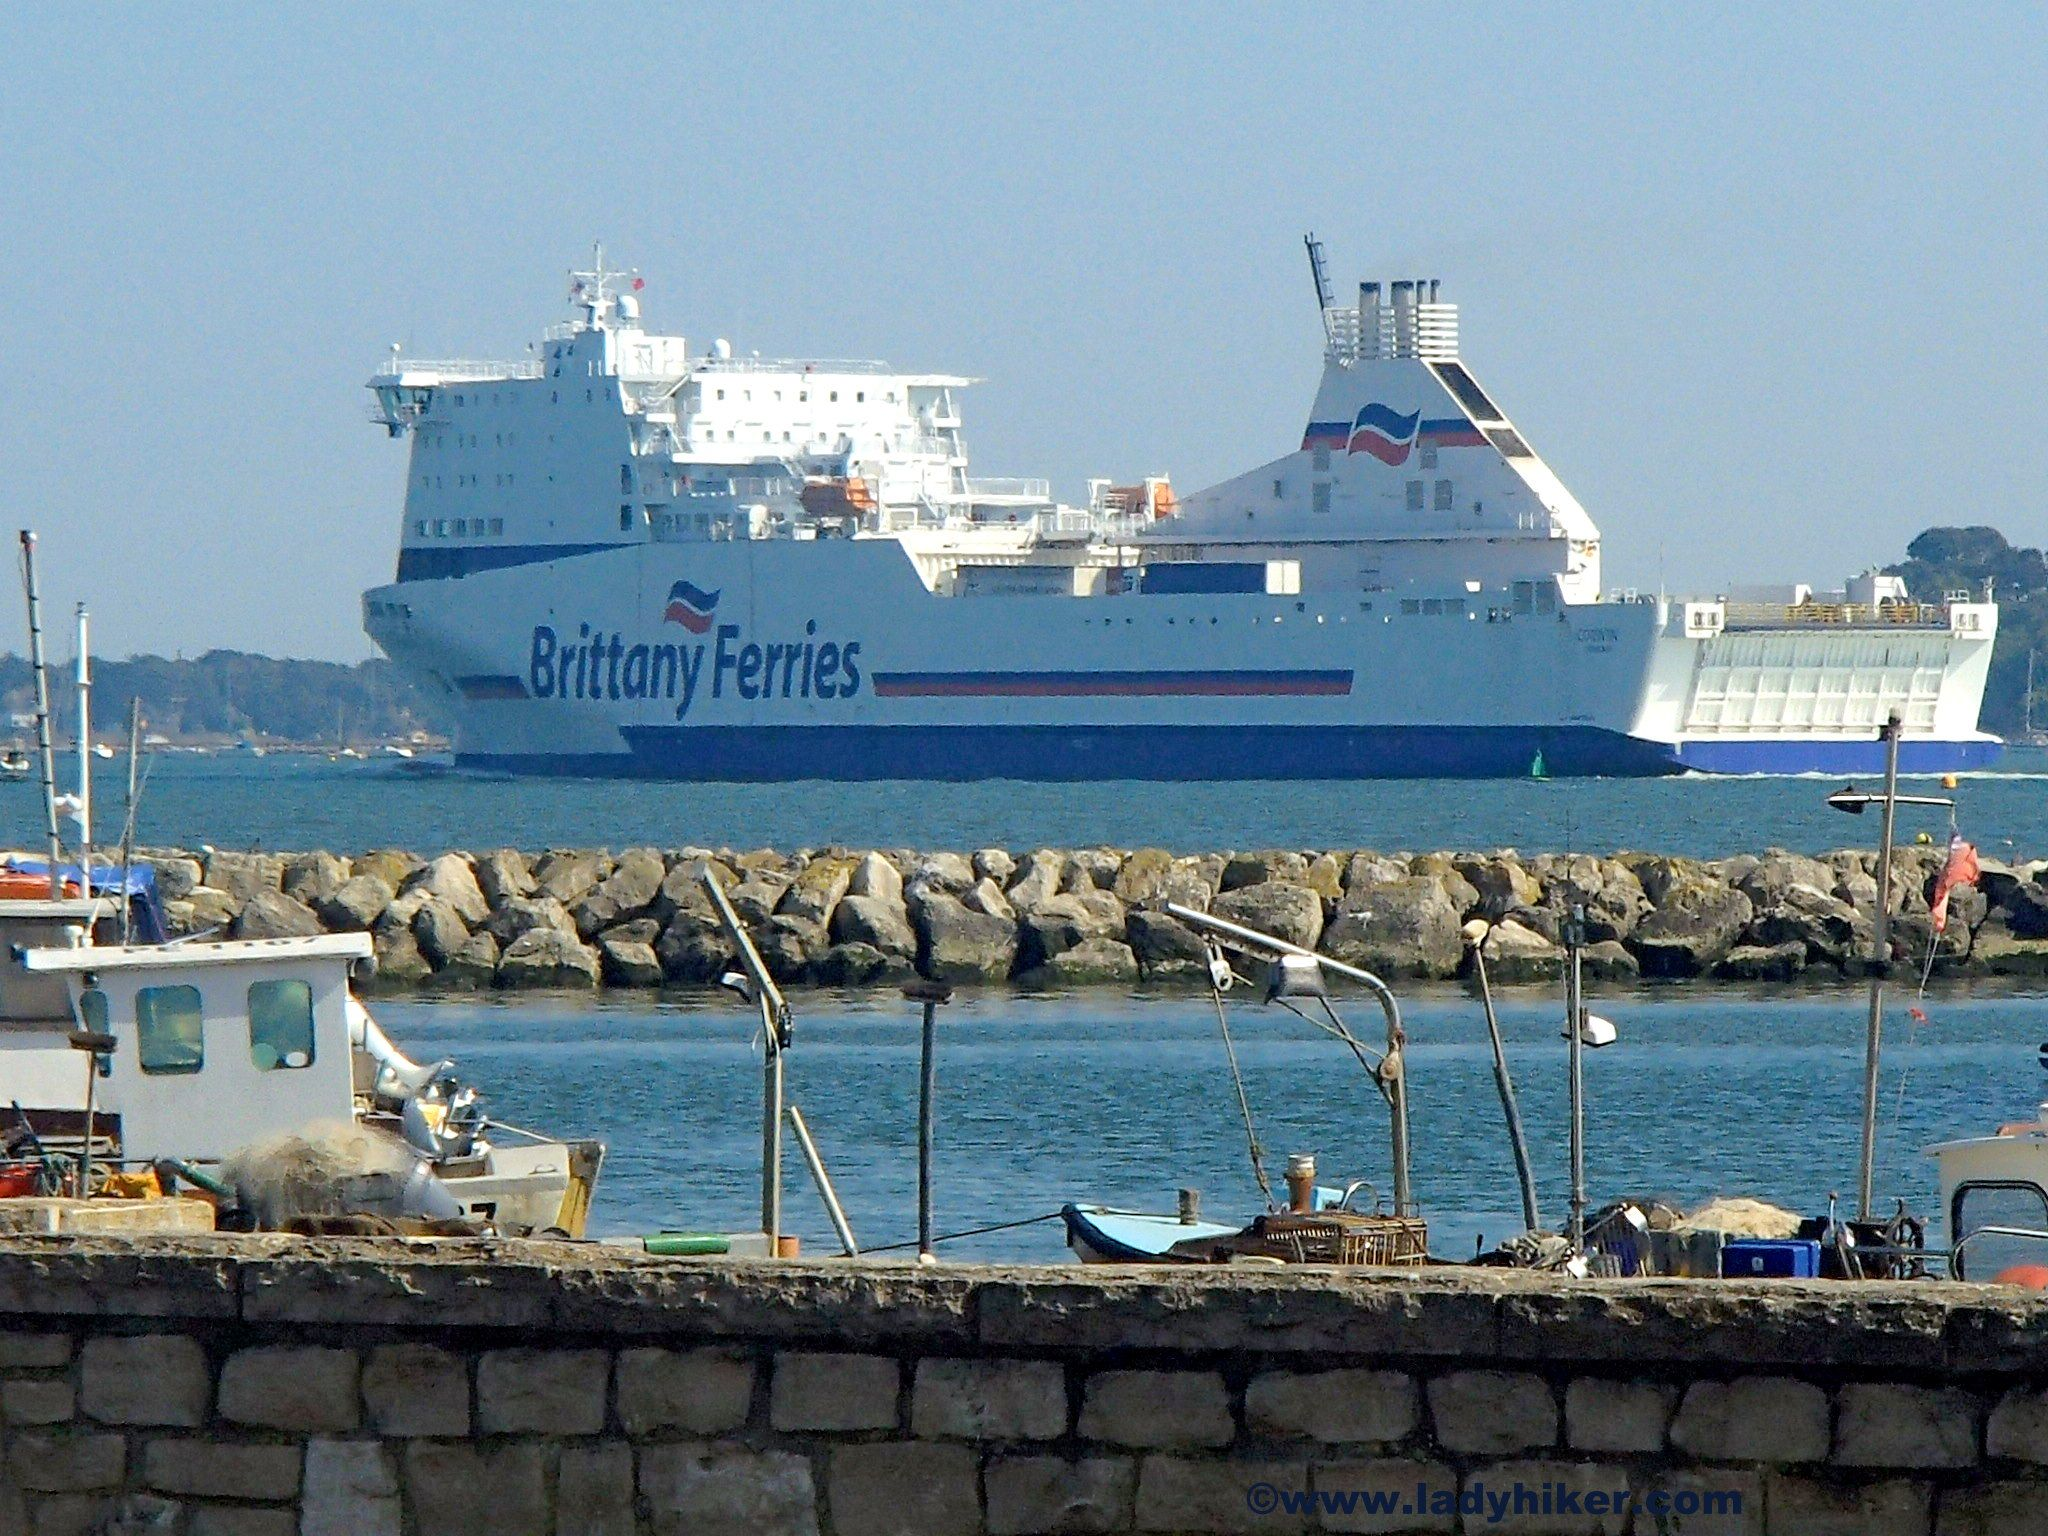 Brittany ferries leaving Poole en route to France http://ladyhiker.com/sheltering-schooners-spanking-rituals-and-luscious-loos/